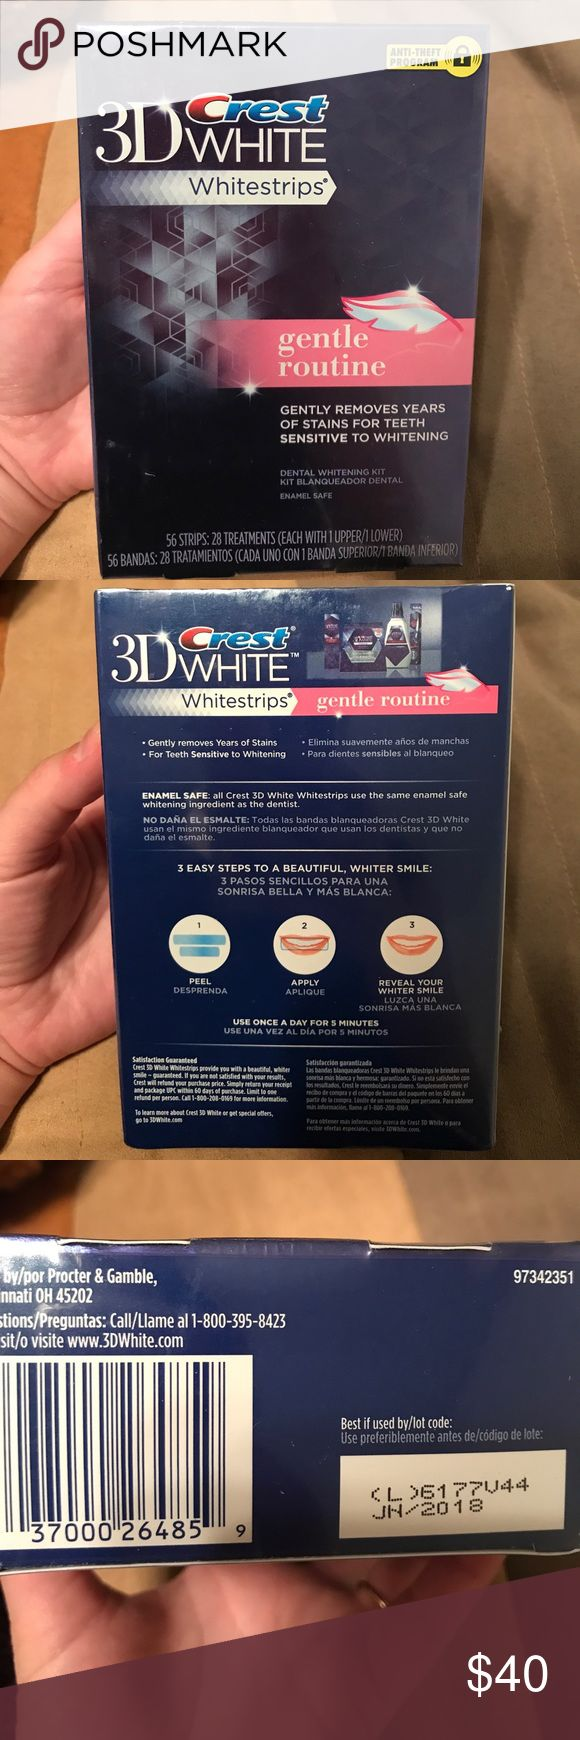 Crest 3D white whitestrips gentle routine Brand new, sealed - Crest 3D white whitestrips gentle routine. Gently removes years of stains for teeth sensitive to whitening. 56 strips (28 treatments) crest Other